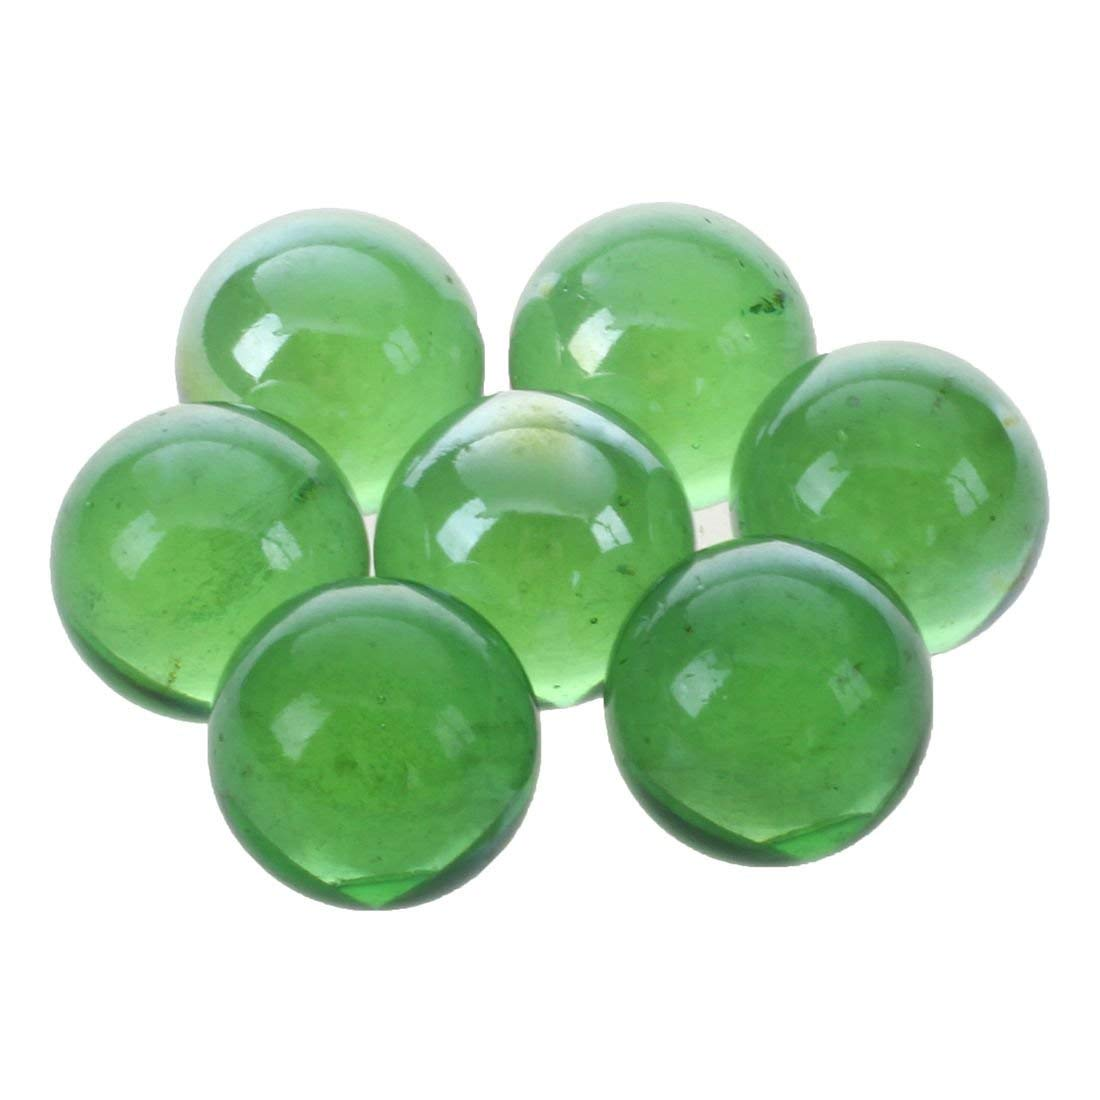 Tcplyn Premium Quality Glass Marbles - 10 Pcs Marbles 16mm Glass Marbles Knicker Glass Balls Decoration Color Nuggets Toy Green by Tcplyn (Image #4)